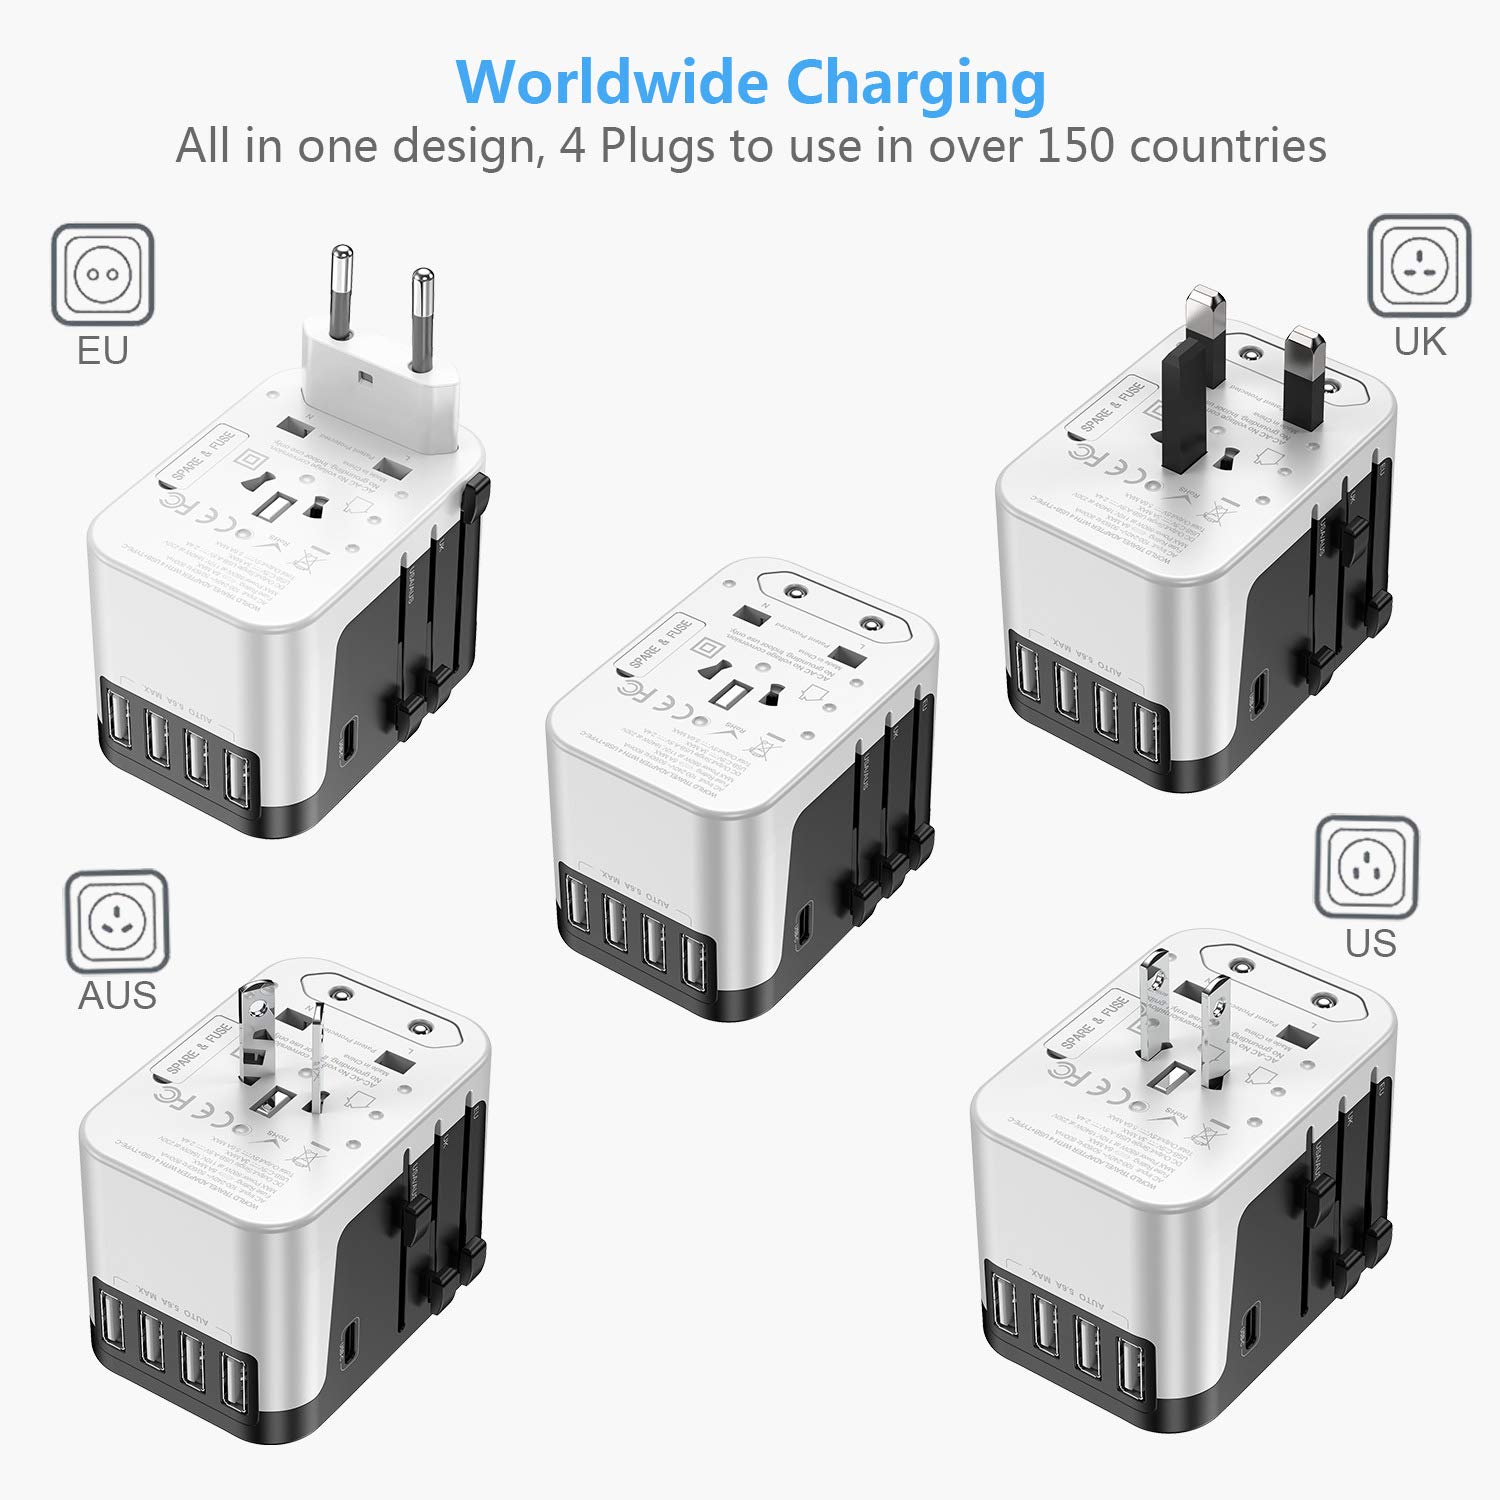 Asia-Black European Adapter AU RXSQUL Universal International Travel Power Adapter W//Smart High Speed 4.6A 4xUSB Worldwide AC Outlet Plugs Adapters for Europe UK US